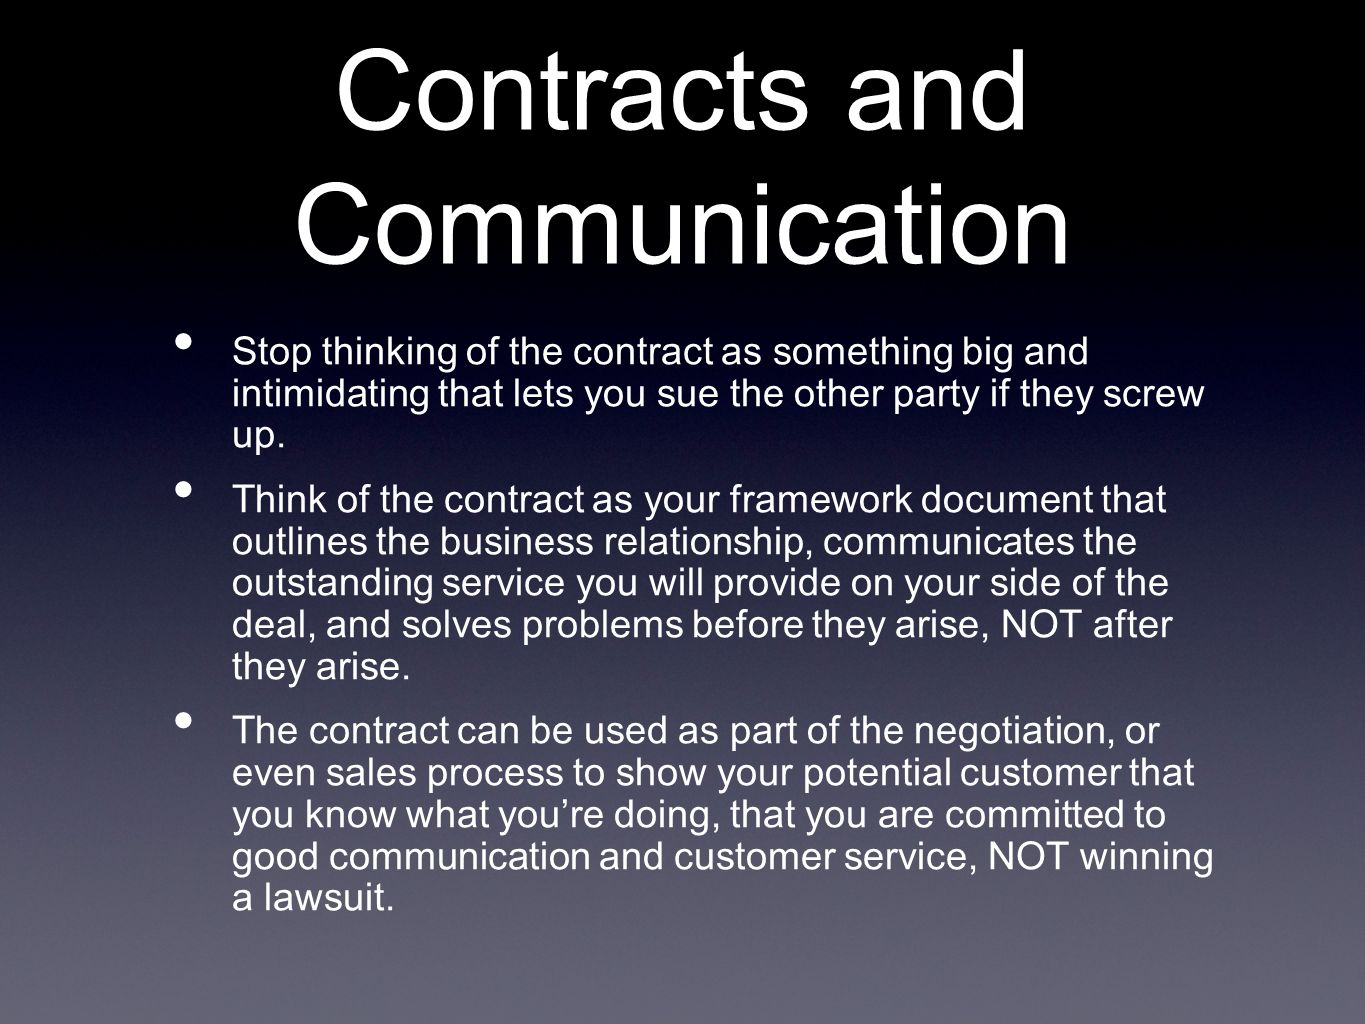 Contracts and Communication Stop thinking of the contract as something big and intimidating that lets you sue the other party if they screw up. Think